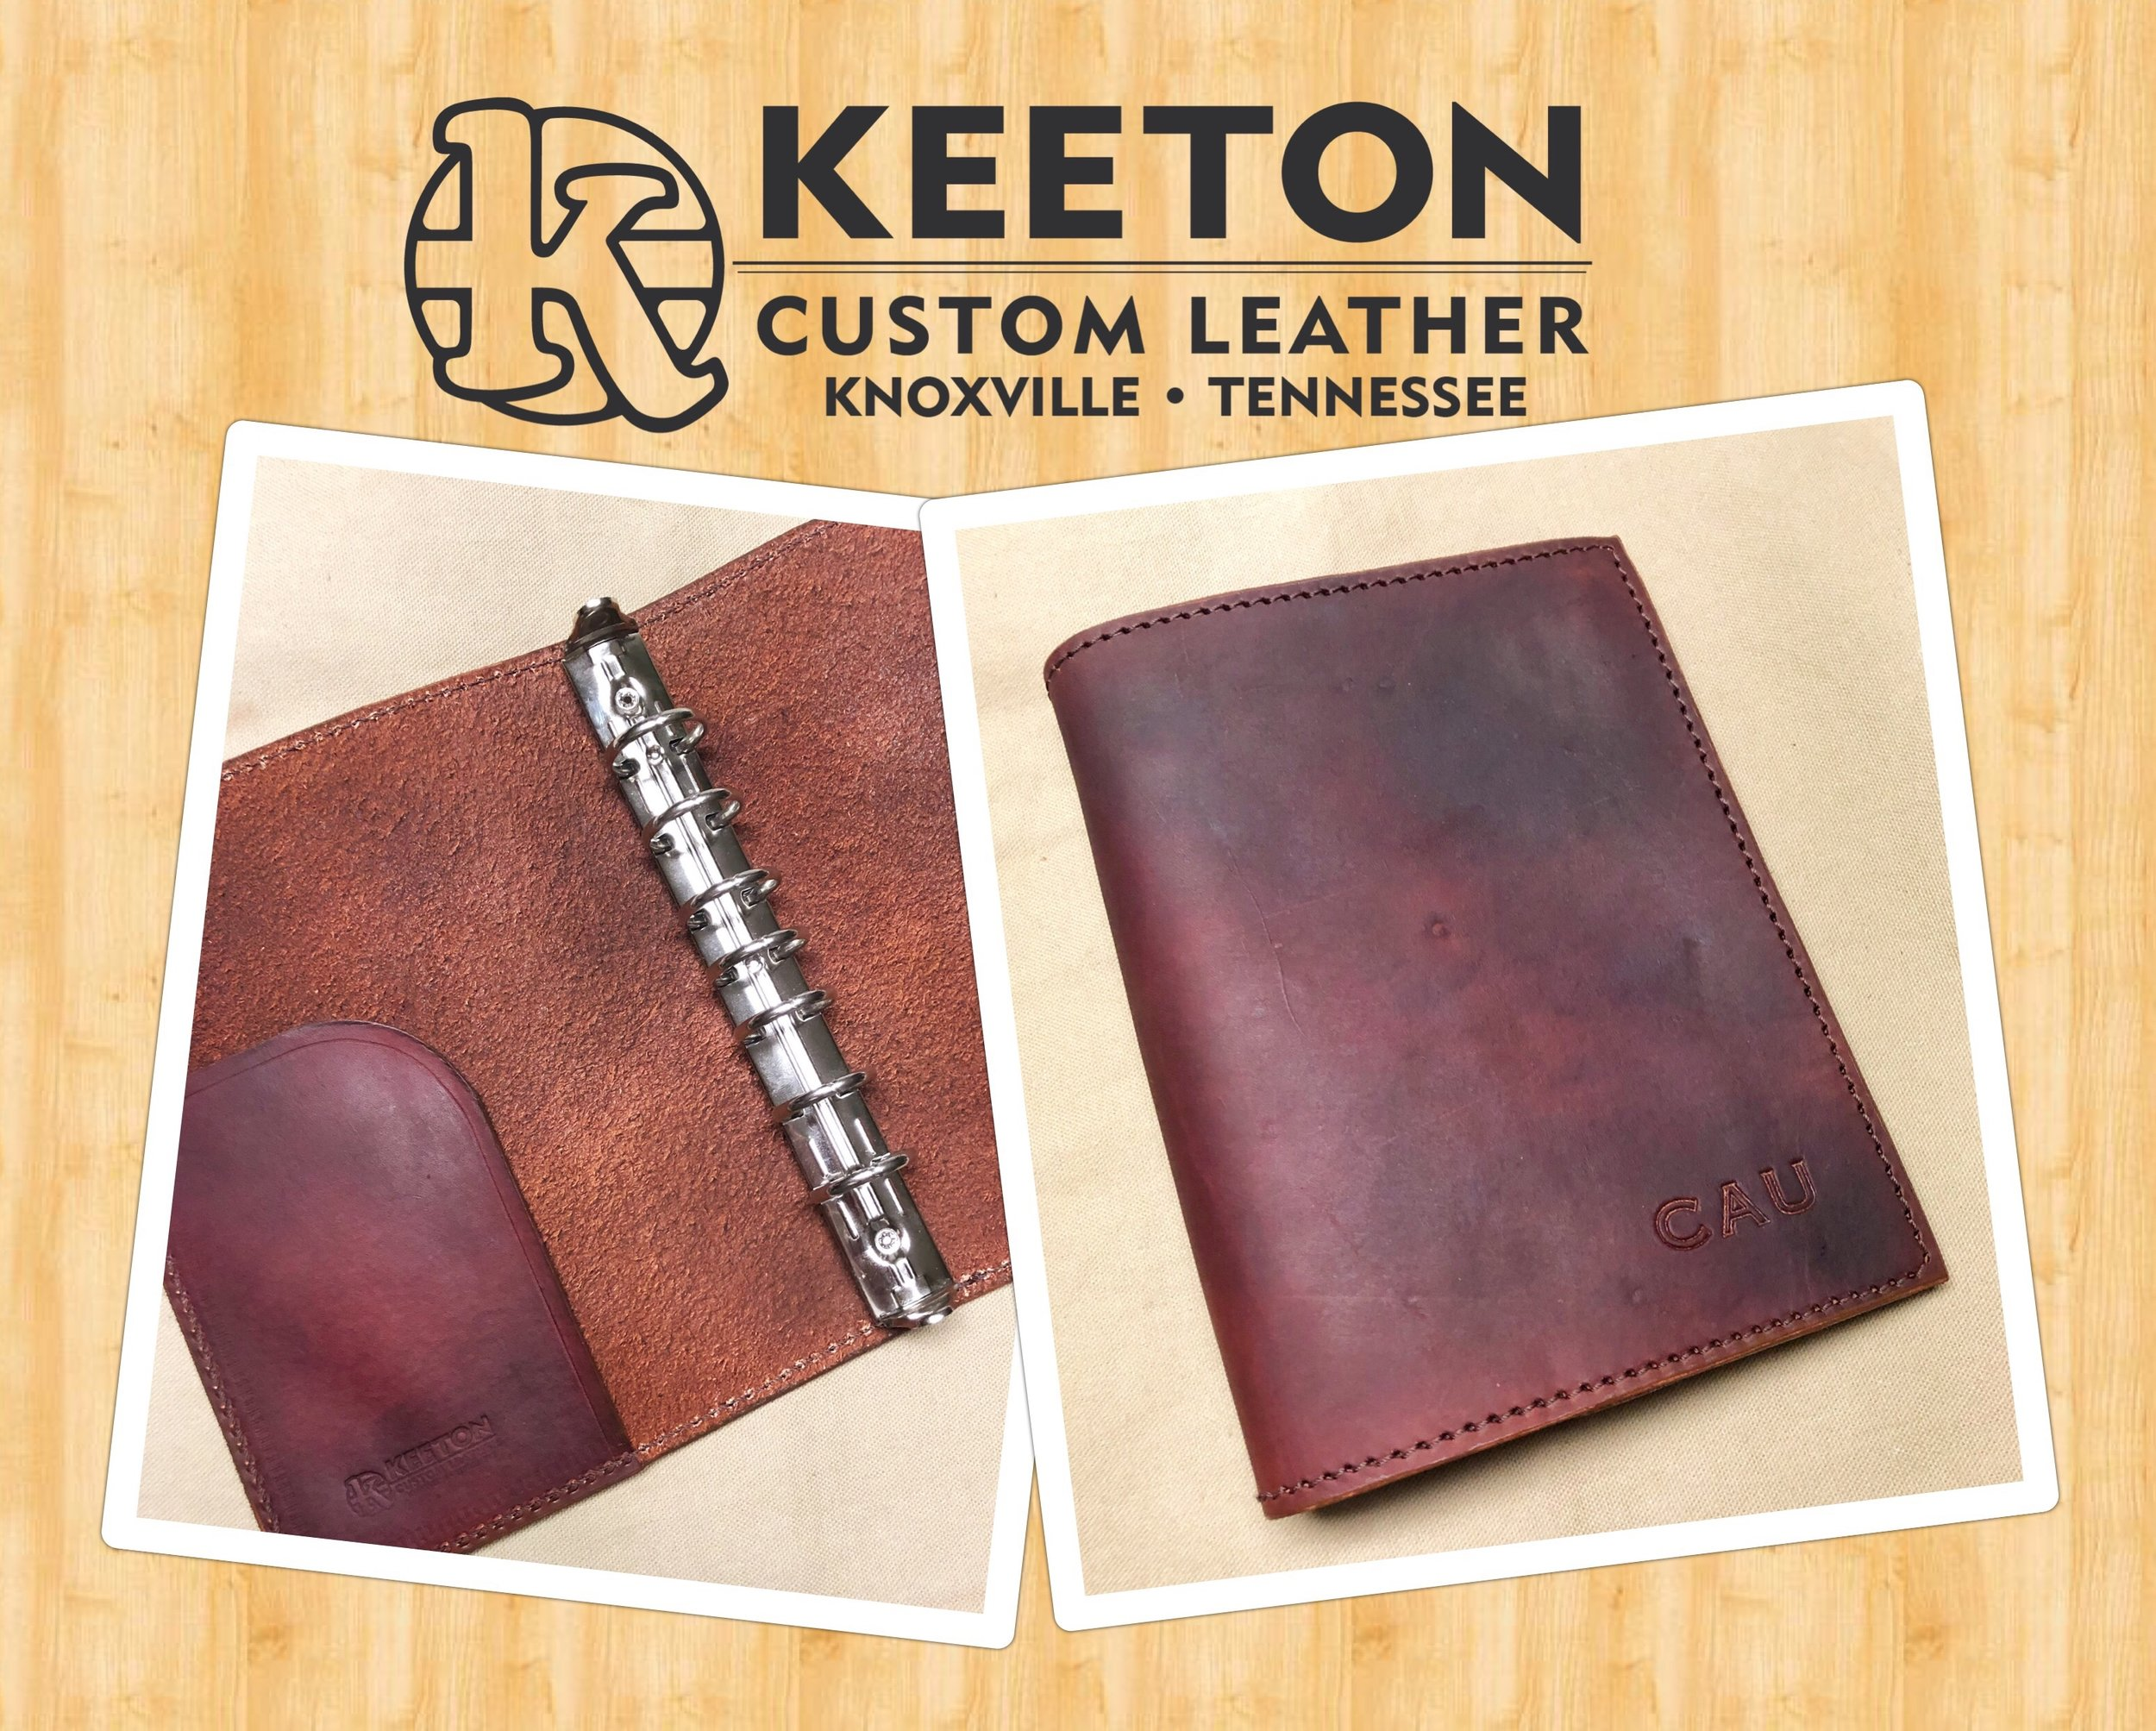 Keeton Custom Leather 2.jpeg